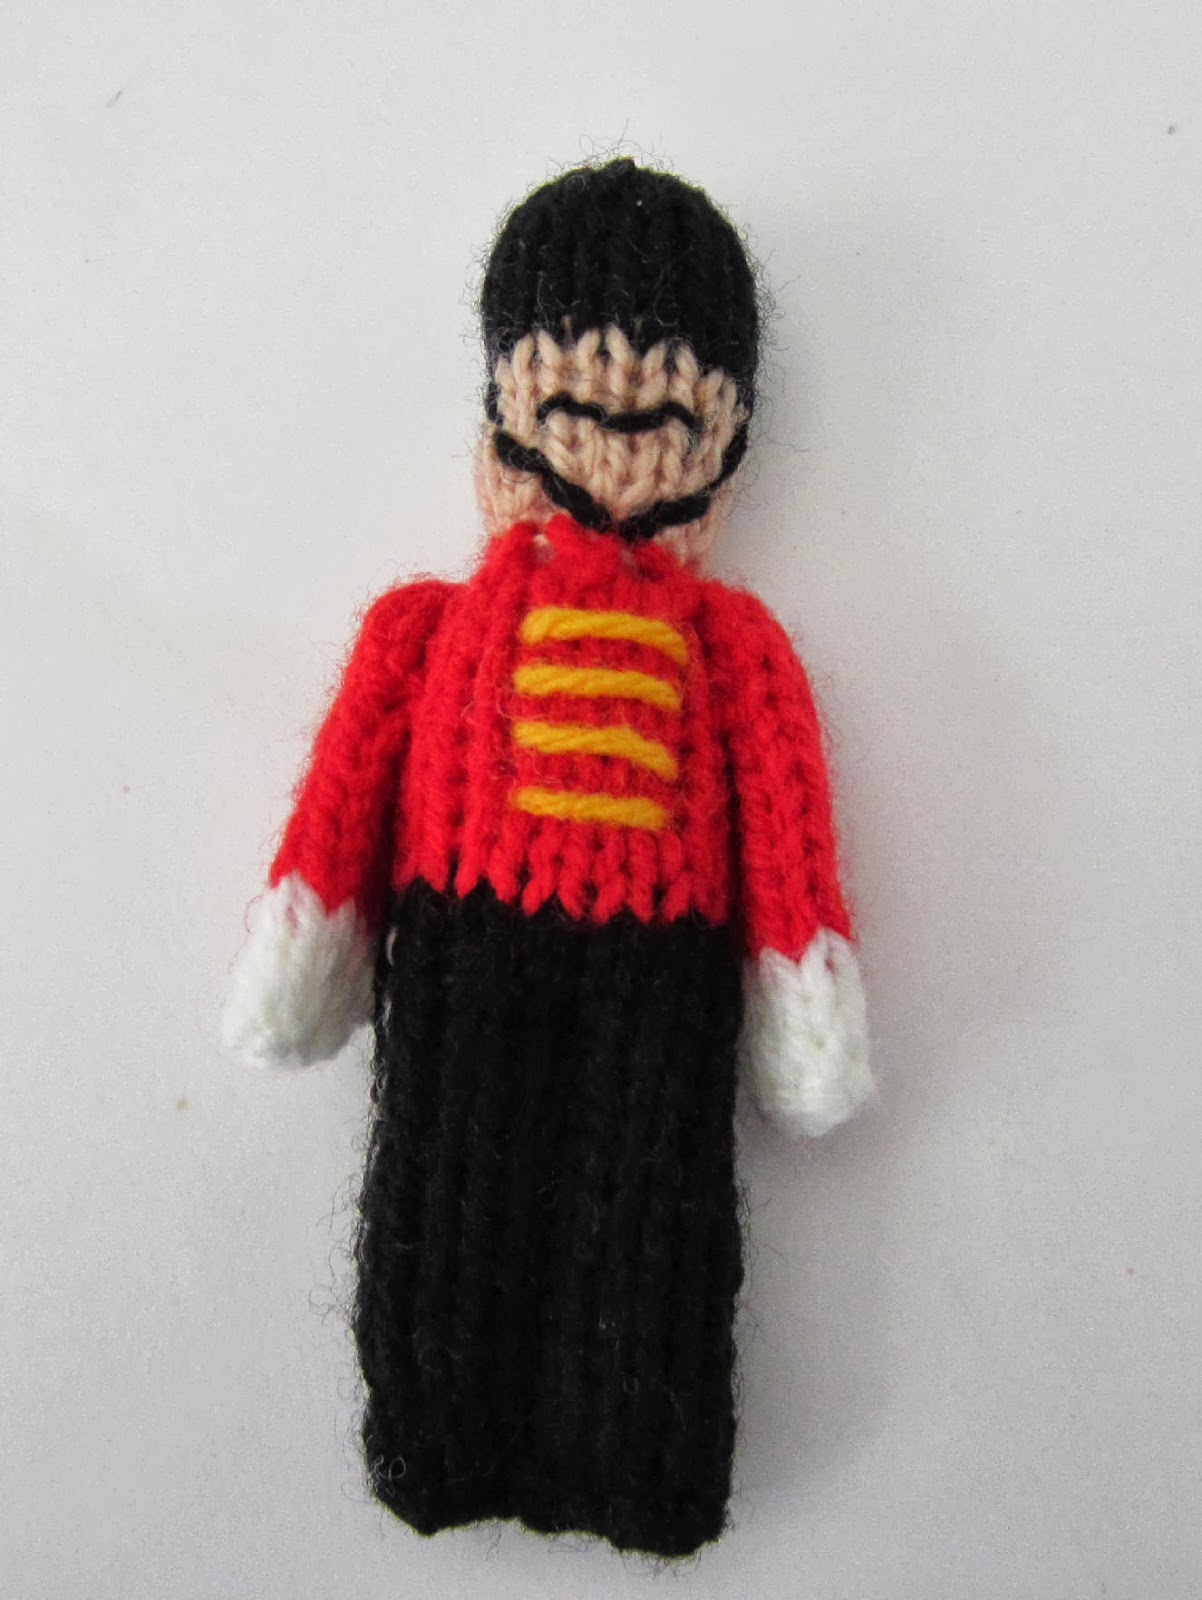 Toy Soldier Christmas Ornament - Free knitting Pattern ⋆ Knitting Bee